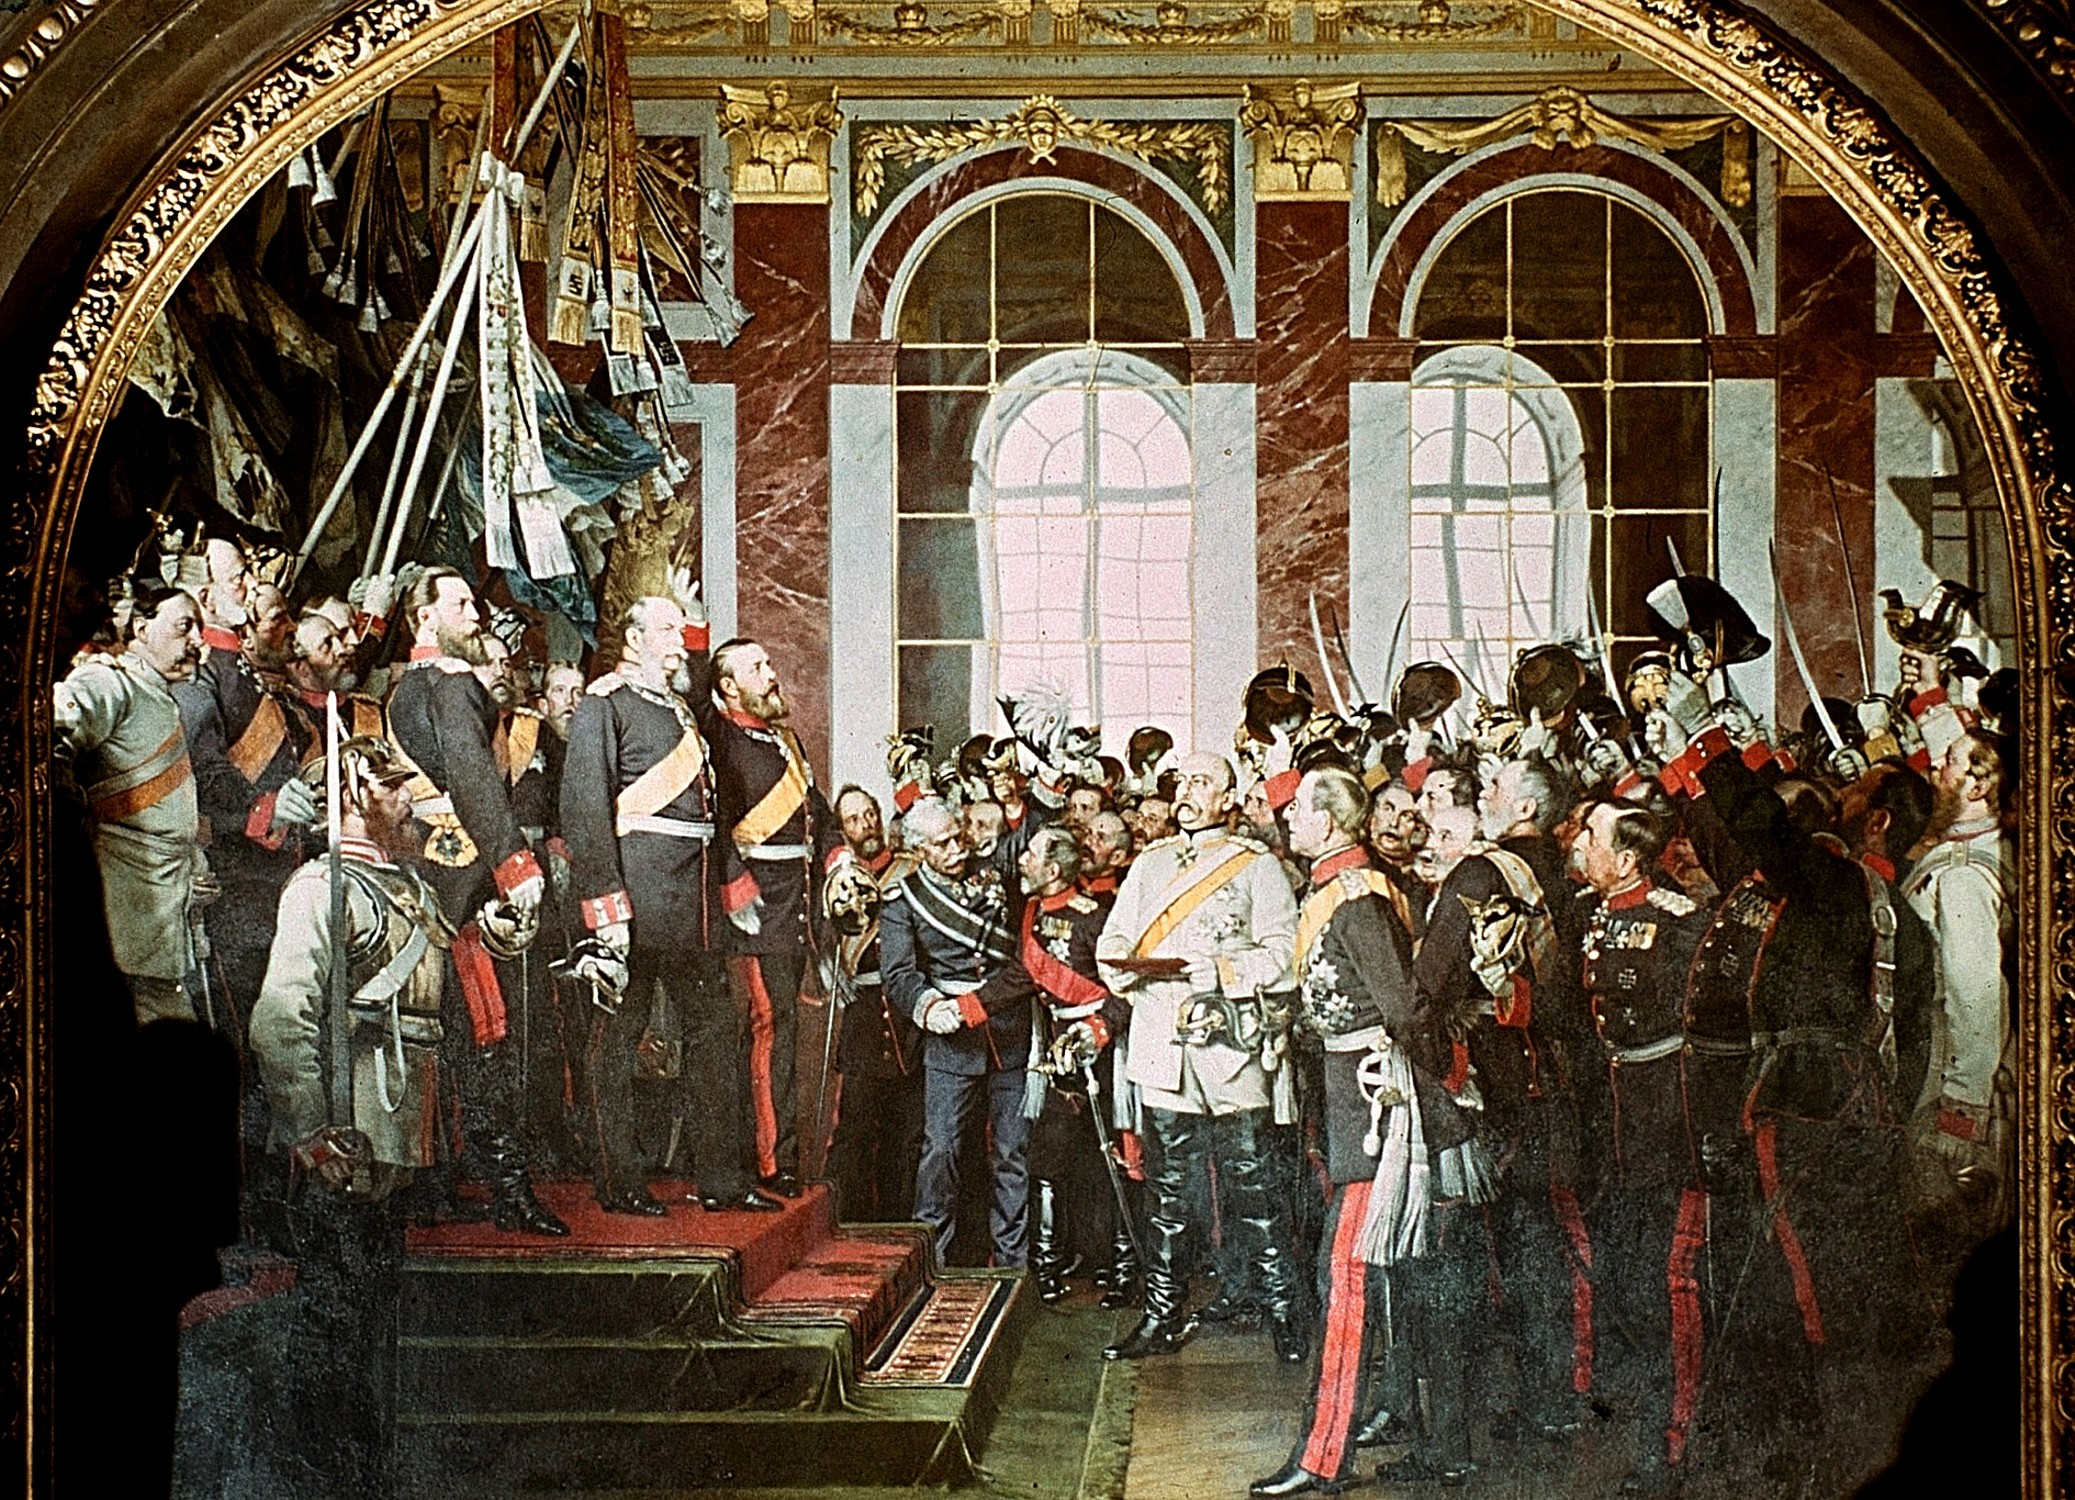 the politics of bismarck in 19th century germany The political climate of the era was a result of german unification, the period stretching across the 19th century and culminating in 1871, when 26 small states, principalities, duchies and.